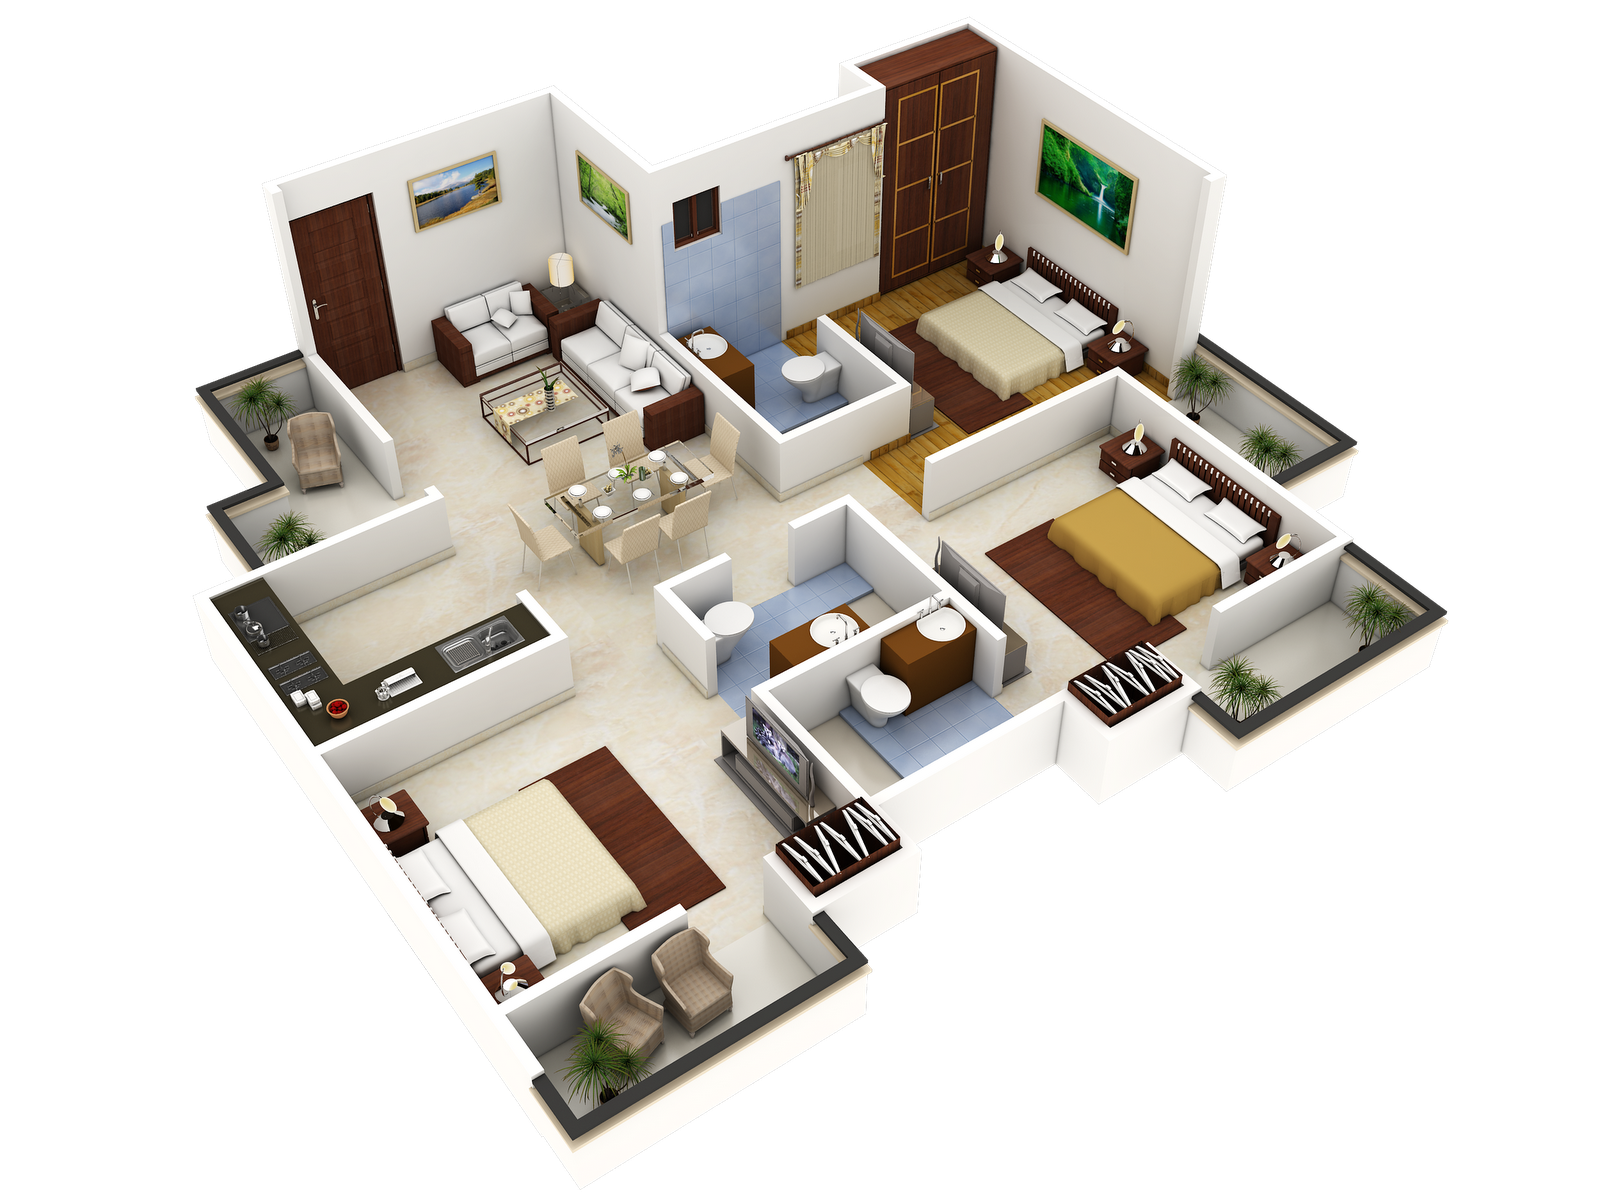 3 bedroom house designs 3d buscar con google grandes for 3 bedroom house plan design 3d